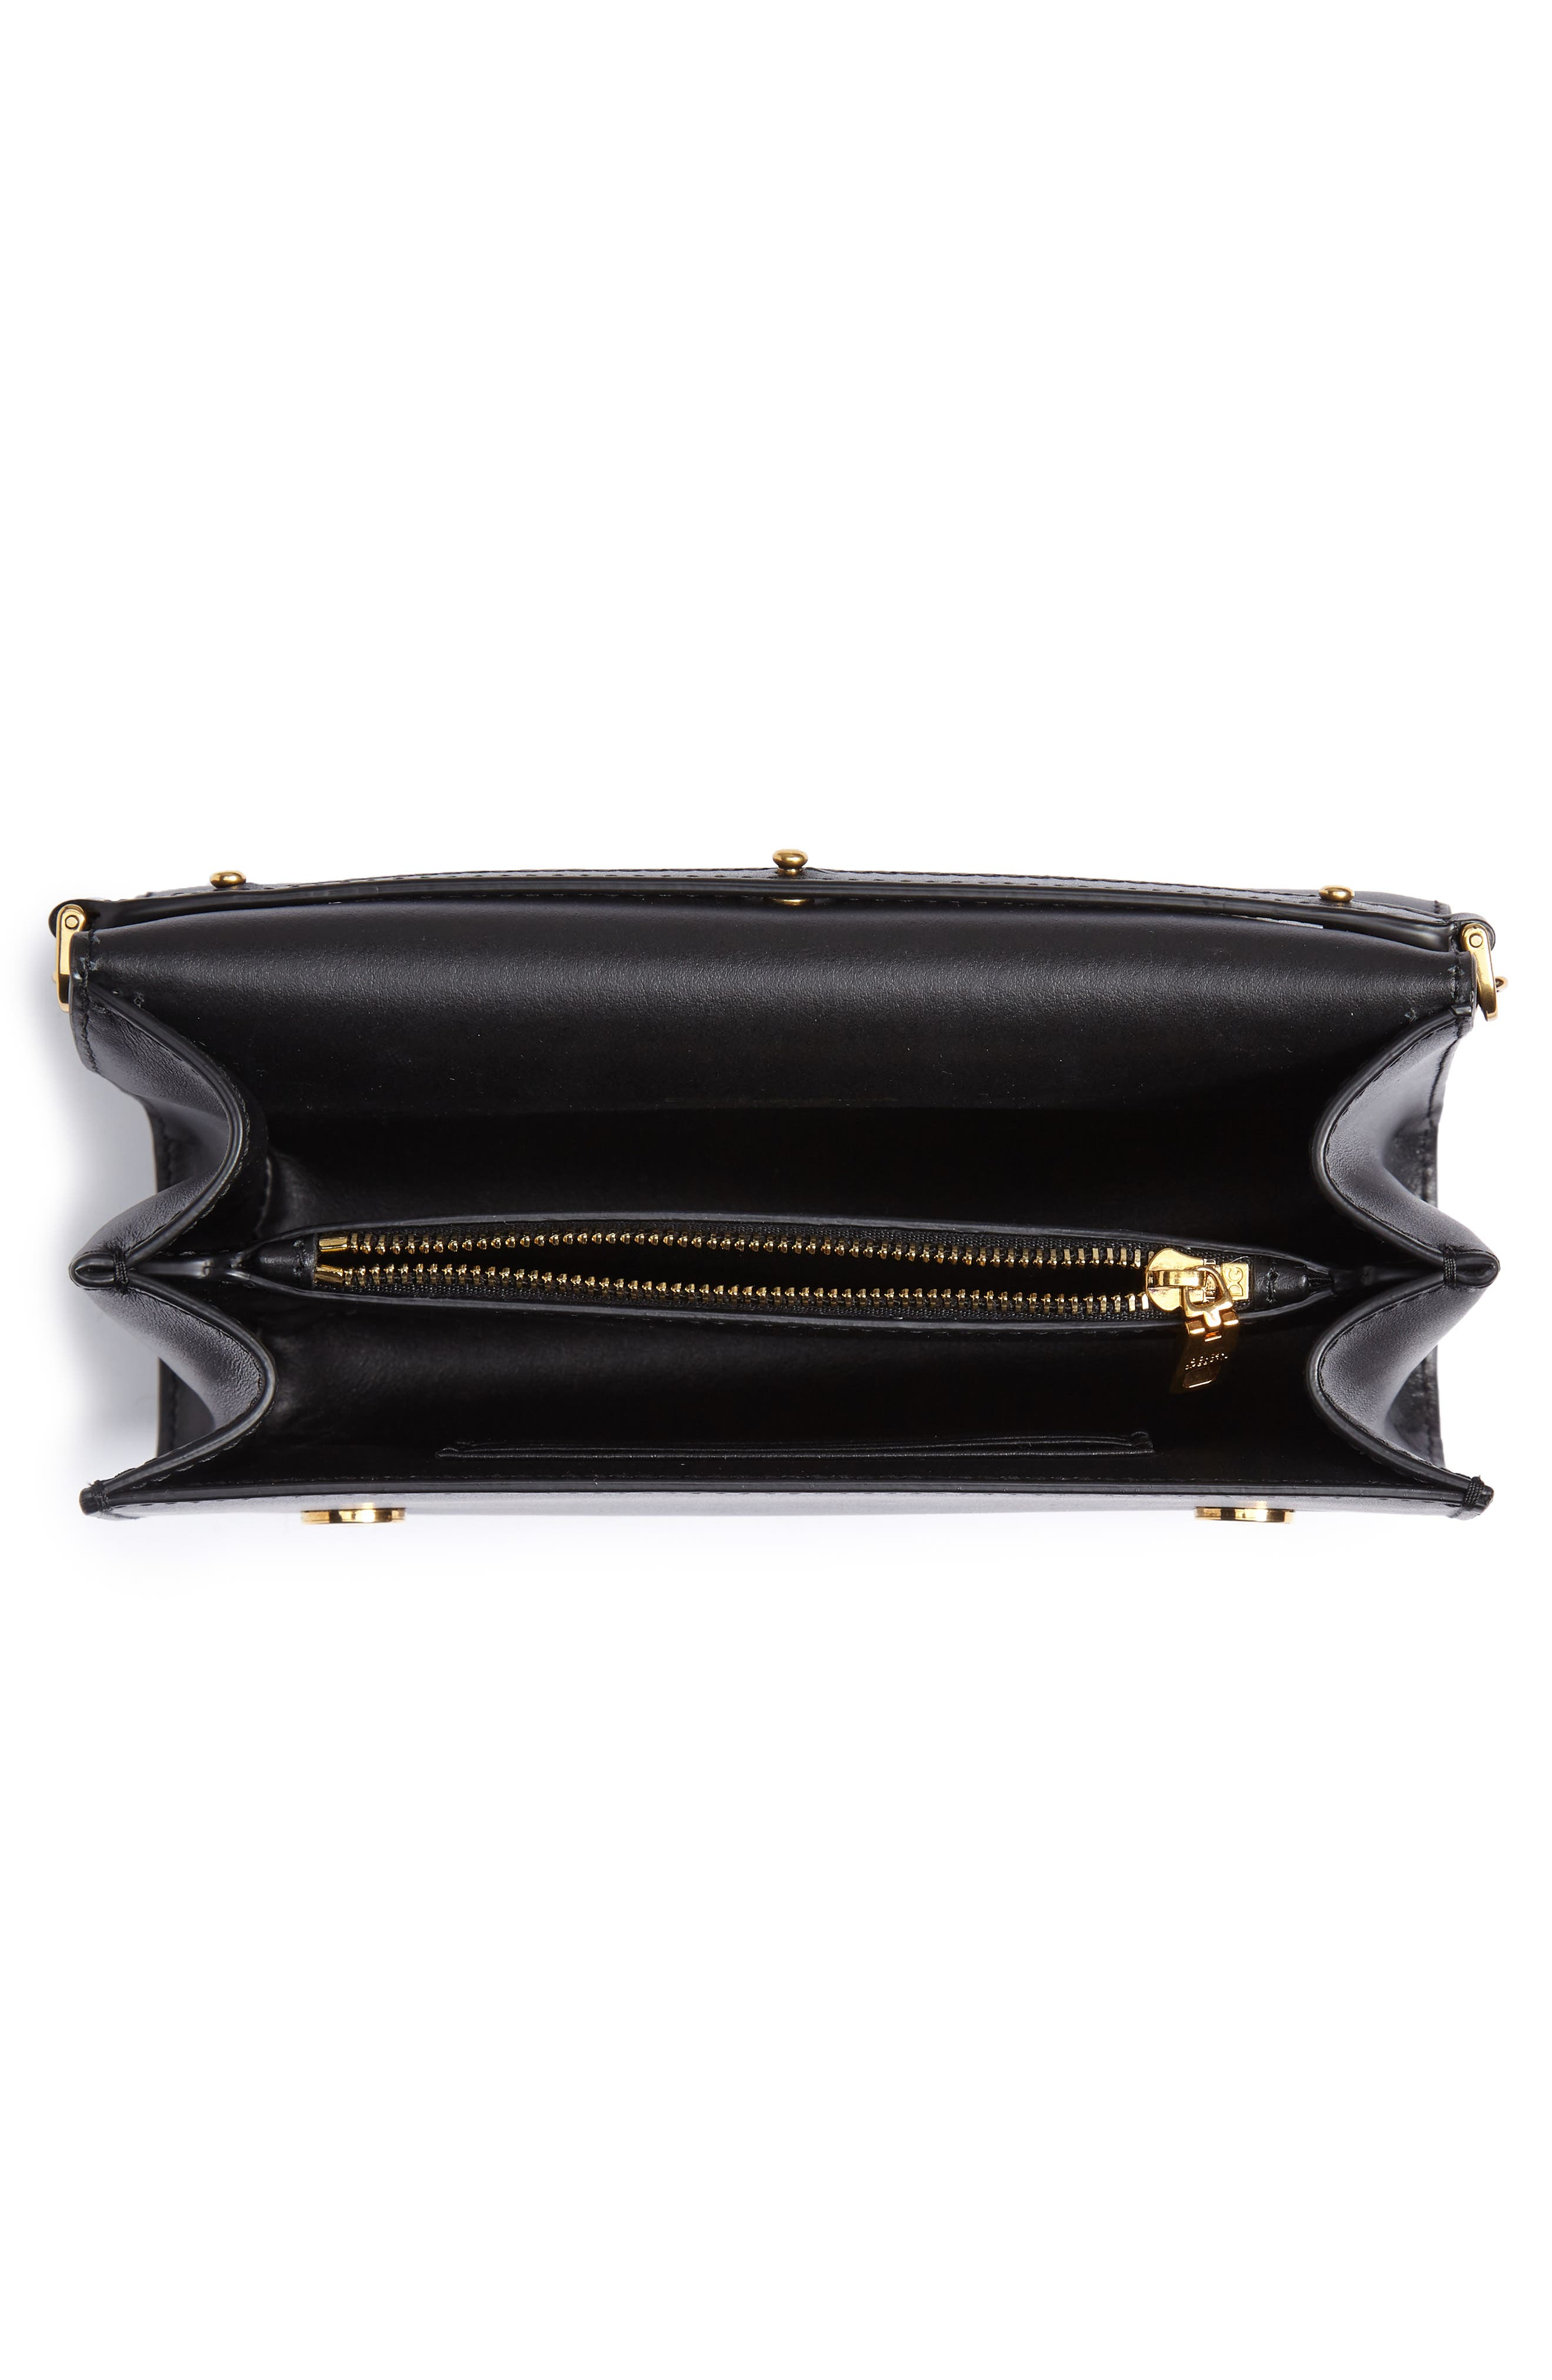 DOLCE&GABBANA, Leather Clutch, Alternate thumbnail 4, color, NERO